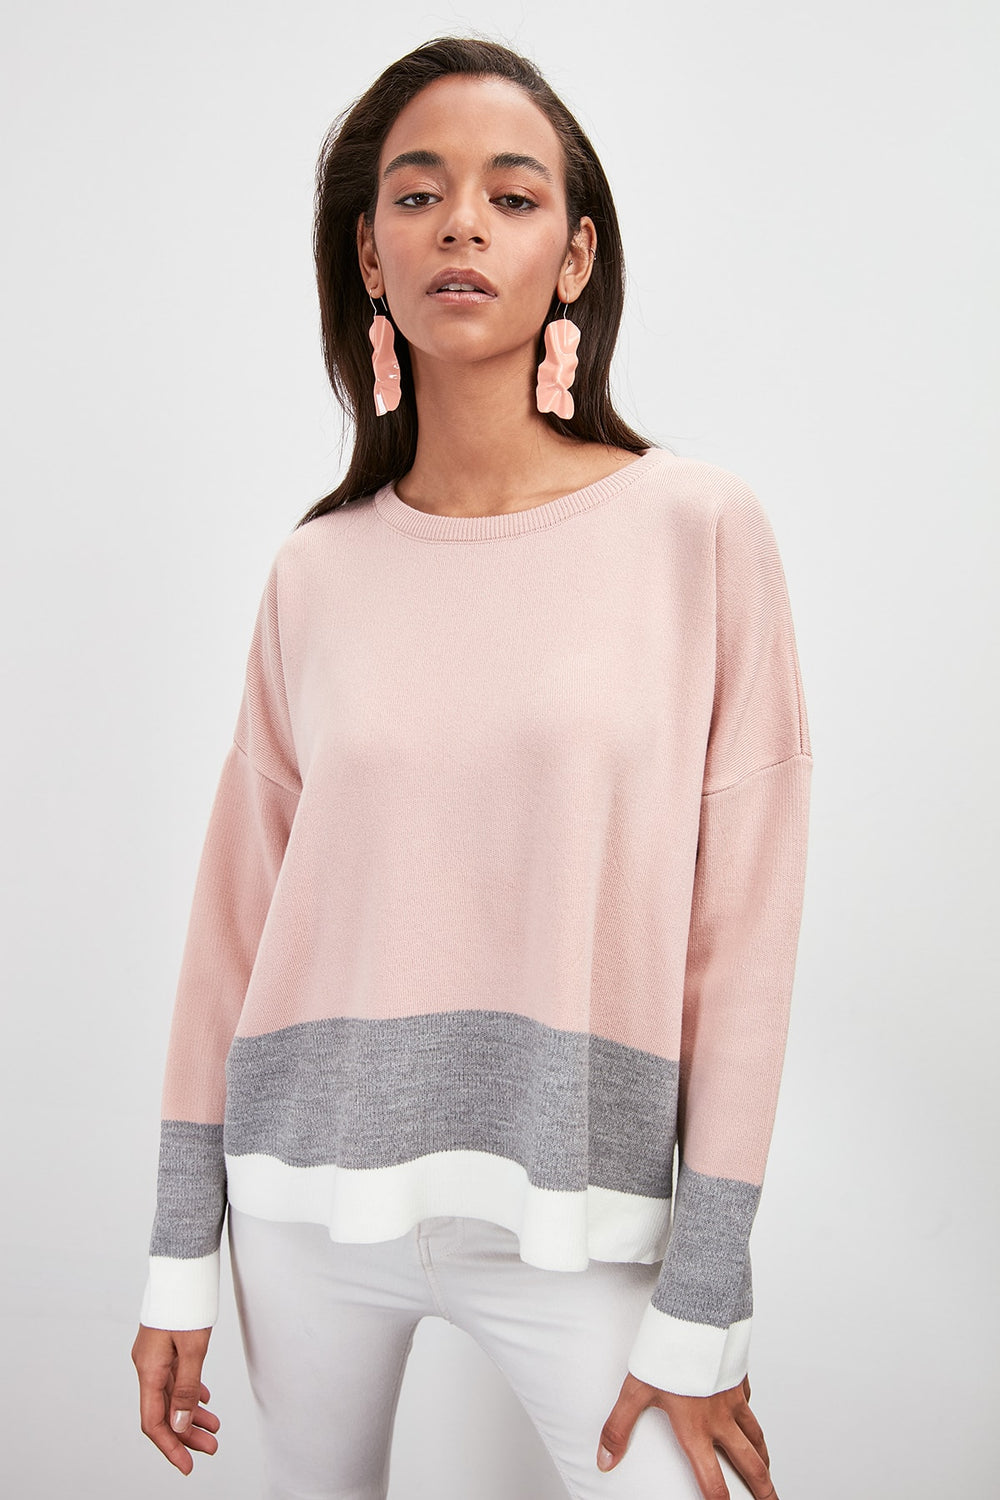 With Color Block Sweater Pullover - Top Maxy